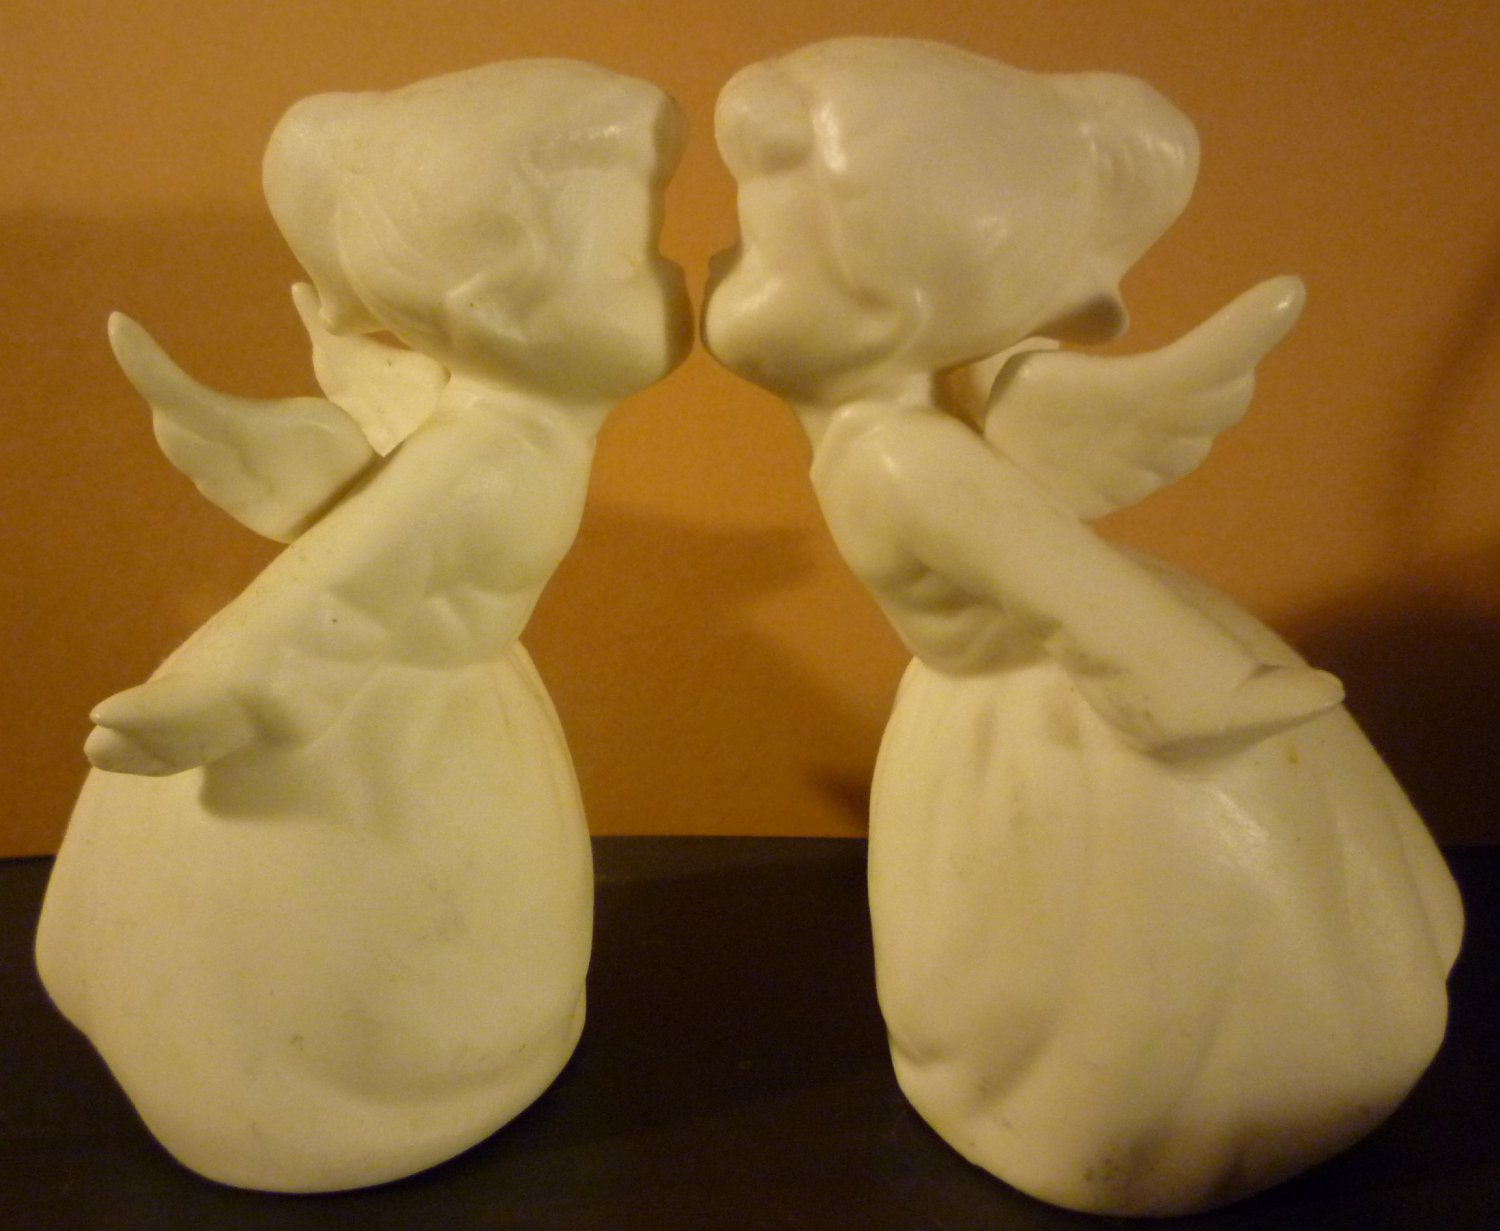 VINTAGE CHARMING WHITE BISQUE PORCELAIN FIGURINE KISSING ANGELS SET OF 2 SCHMIDT